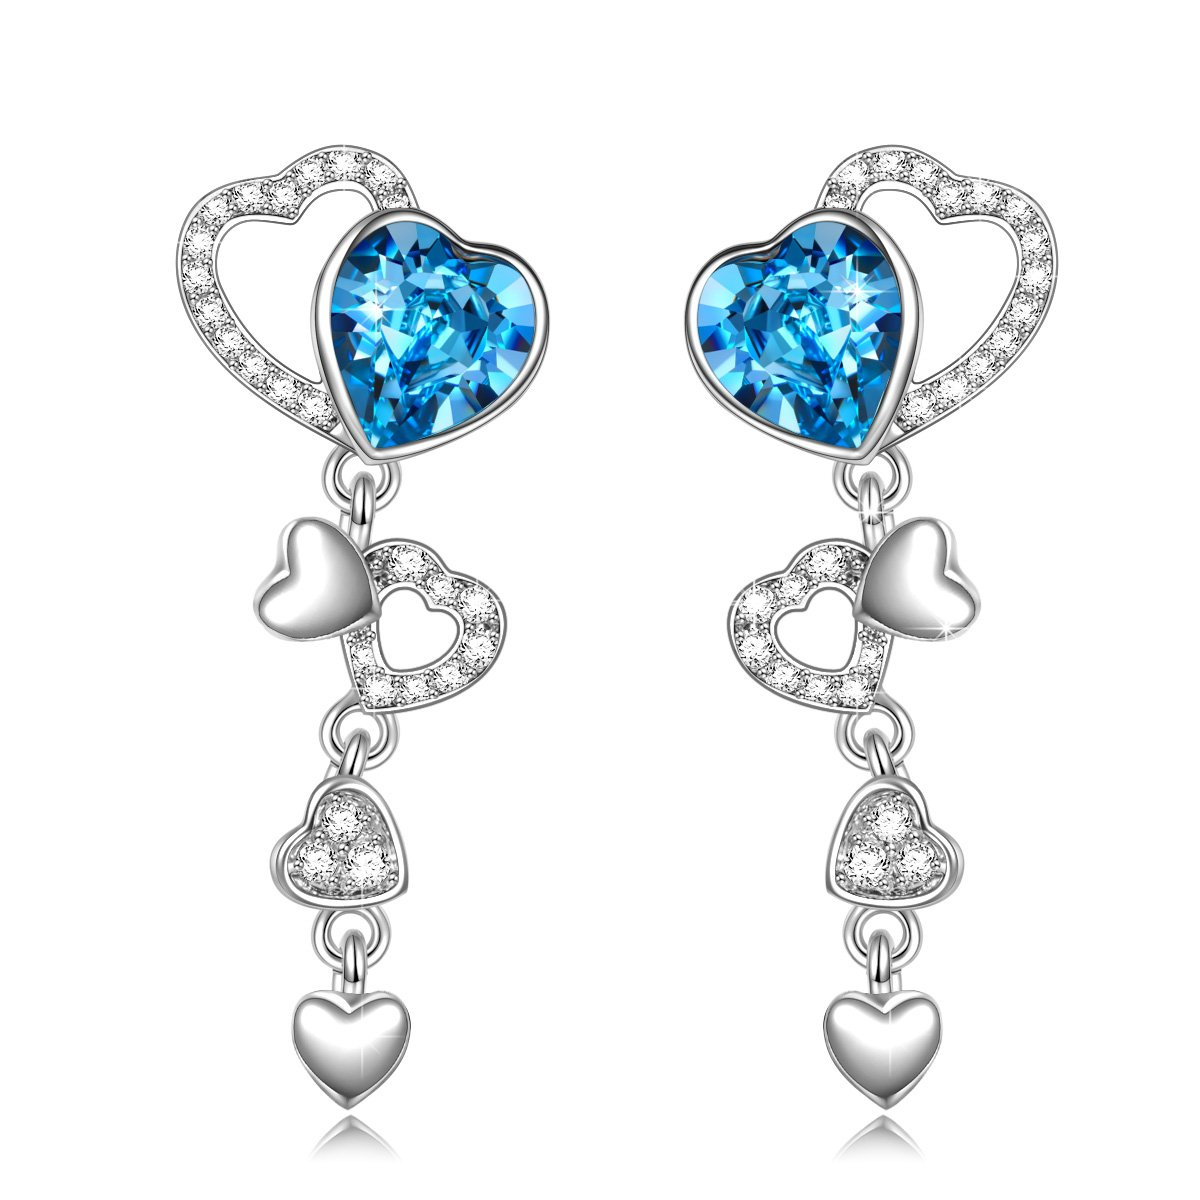 QIANSE''Love Actually'' Dangle Heart Swarovski Crystals Earrings Silver Tone Jewelry for Women Christmas Birthday Gifts for Women Girlfriend Wife Daughter Anniversary Gifts for Her